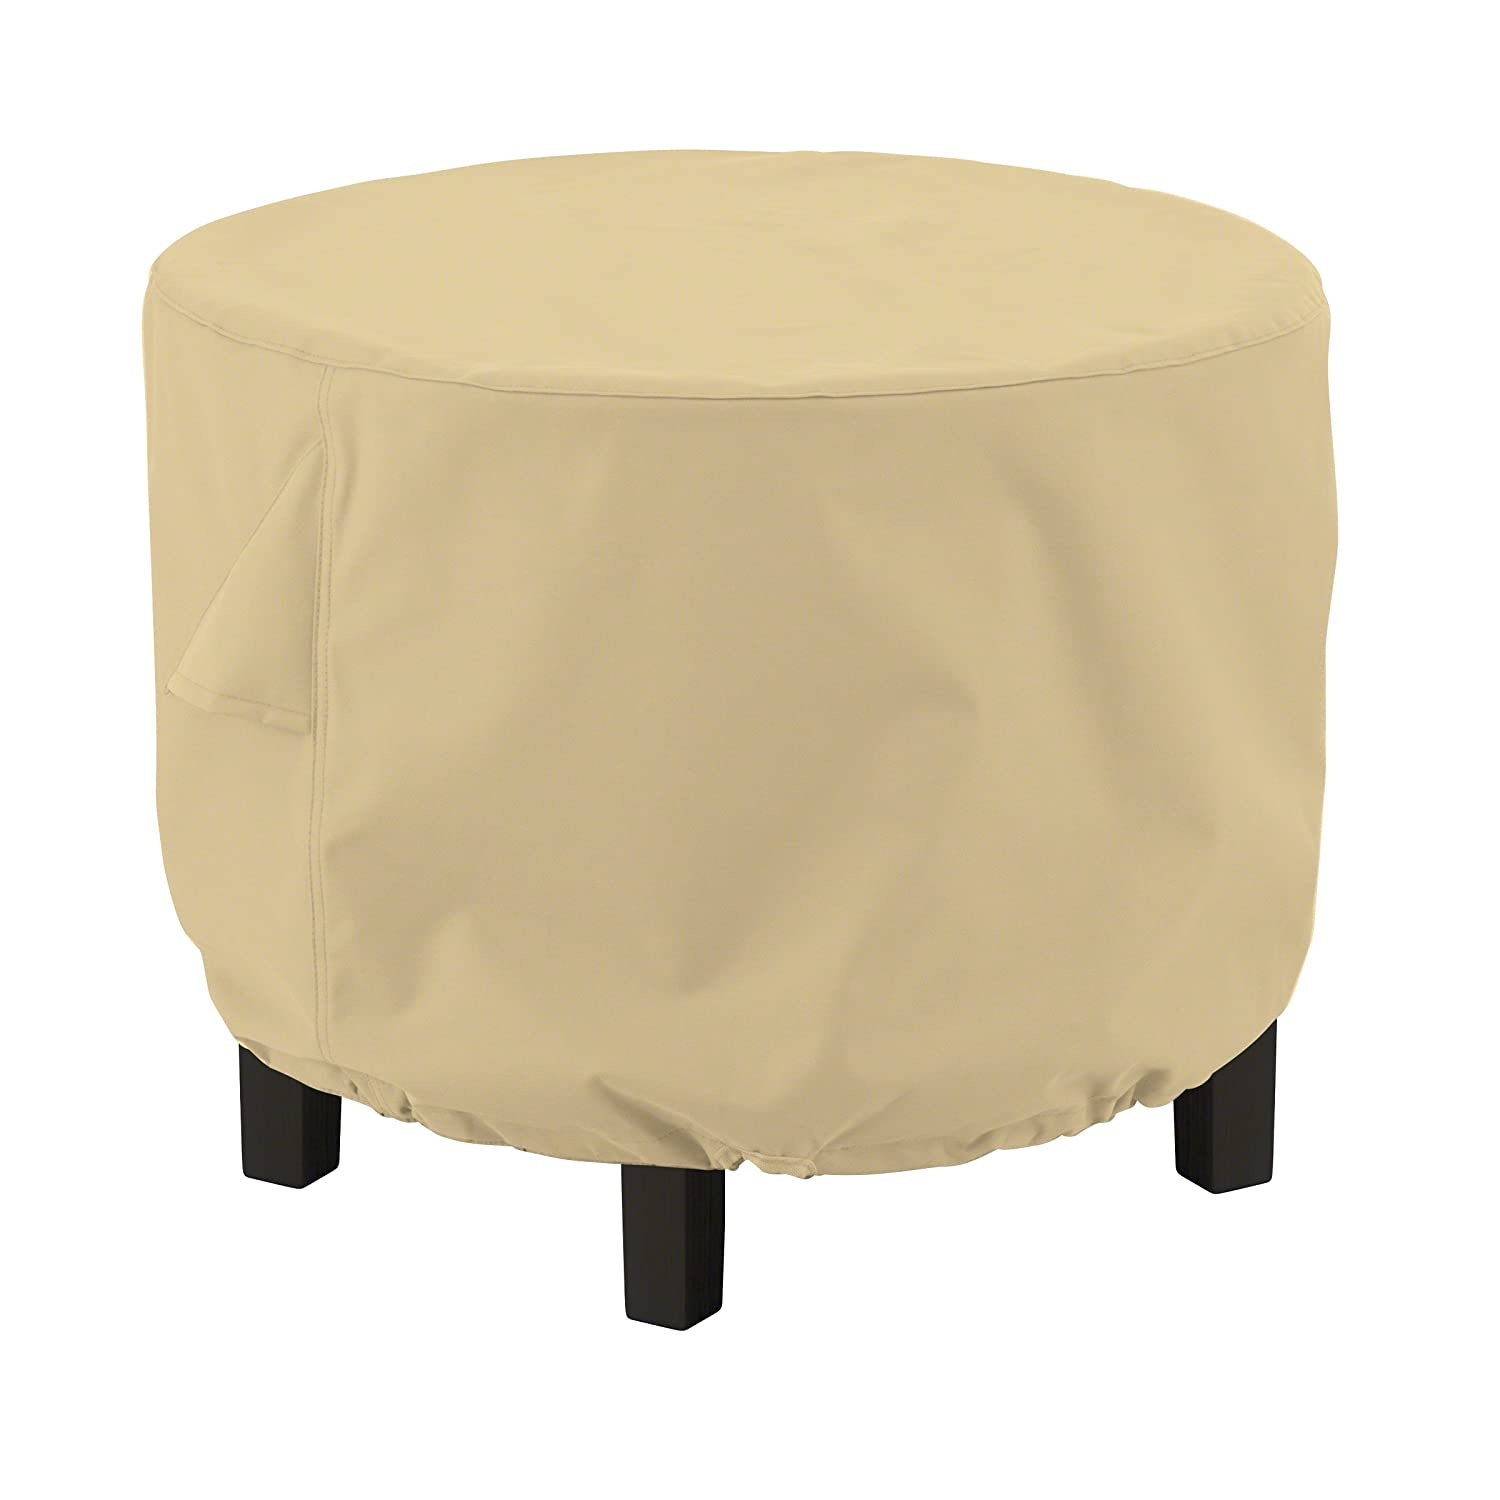 Classic Accessories Terrazzo Round Ottoman/Coffee Table Cover, Medium